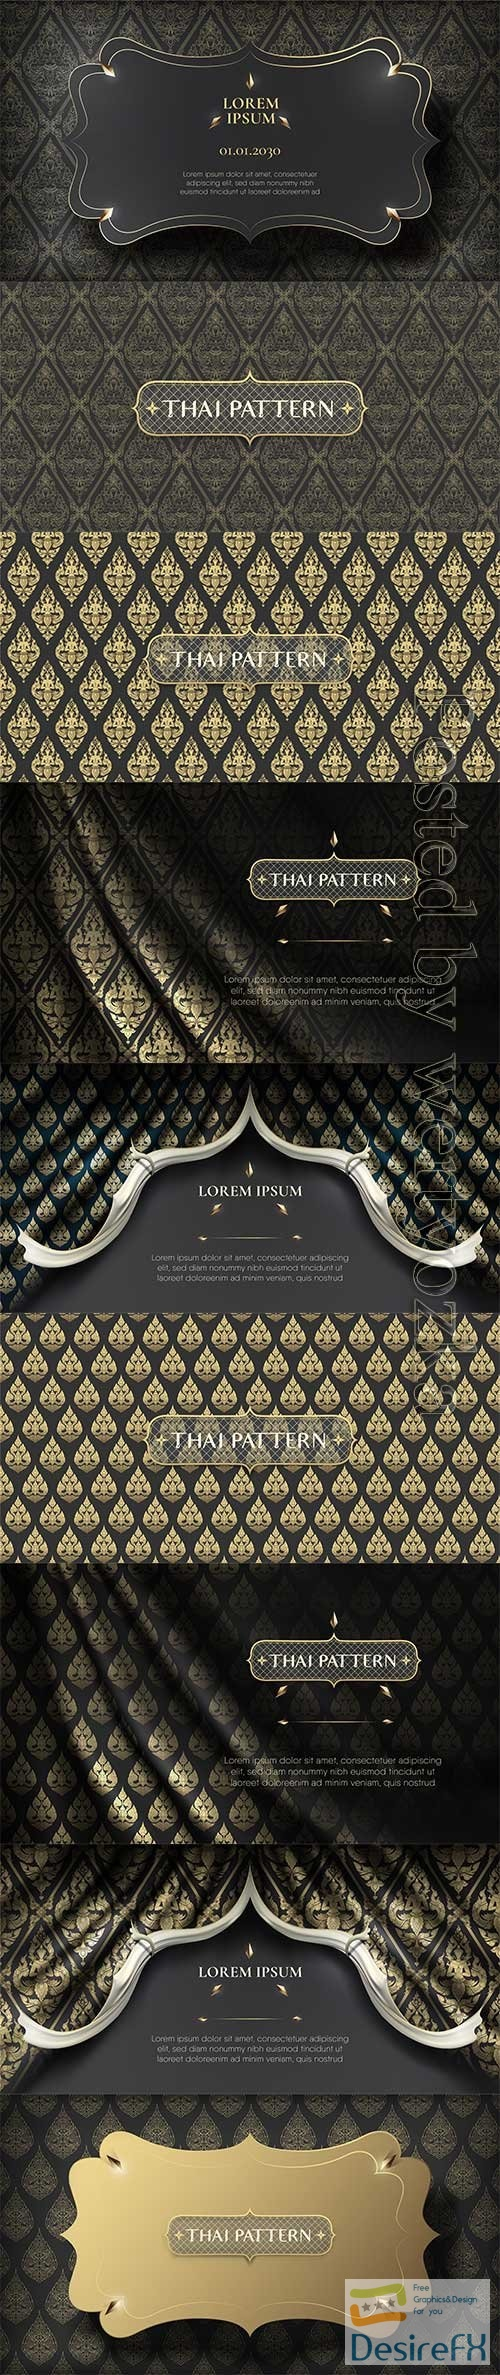 Traditional hand drawn black and gold thai flower pattern background